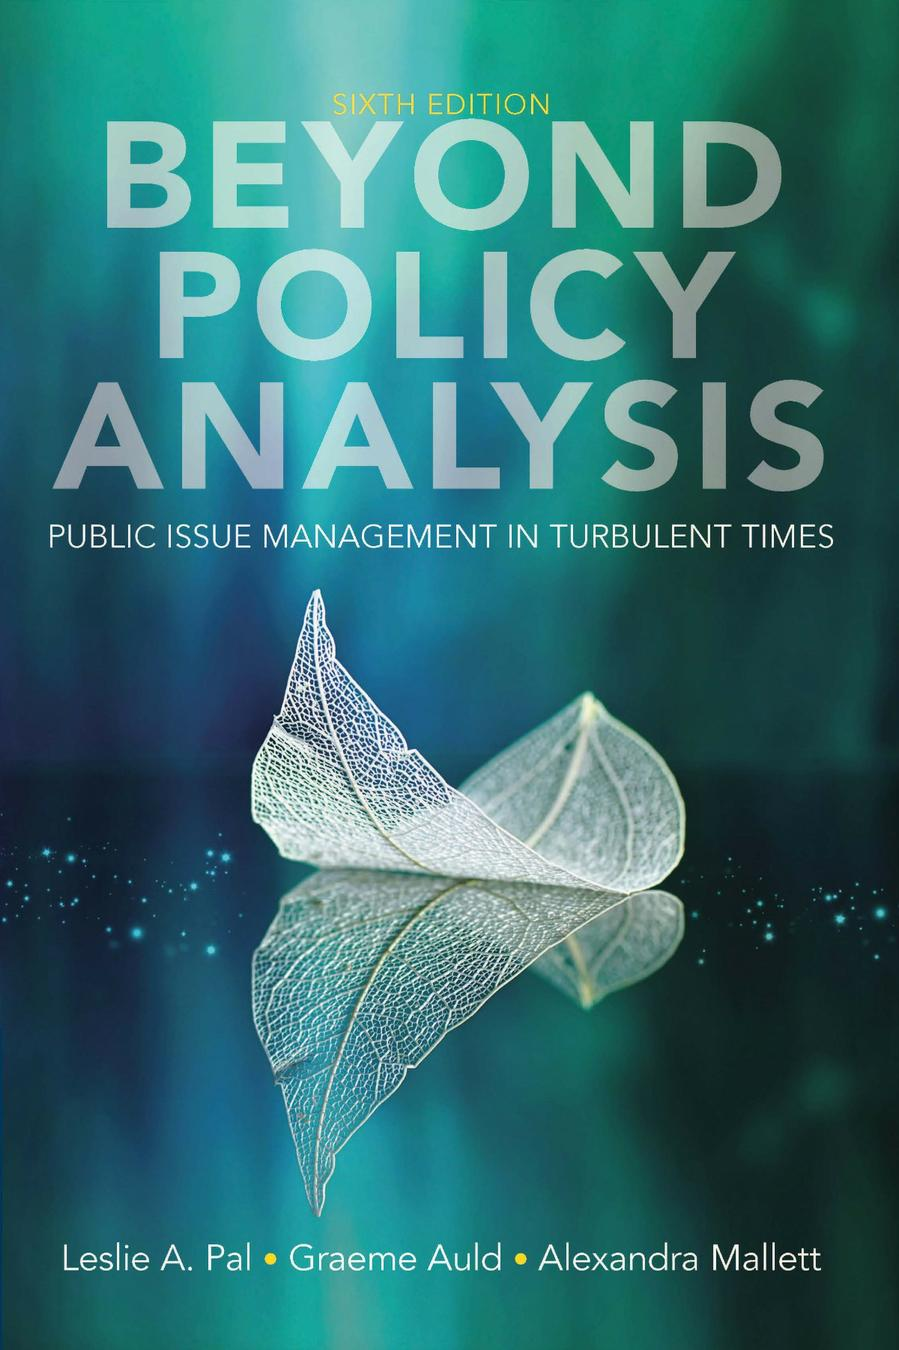 Beyond Policy Analysis: Public Issue Management in Turbulent Times, 6th Edition